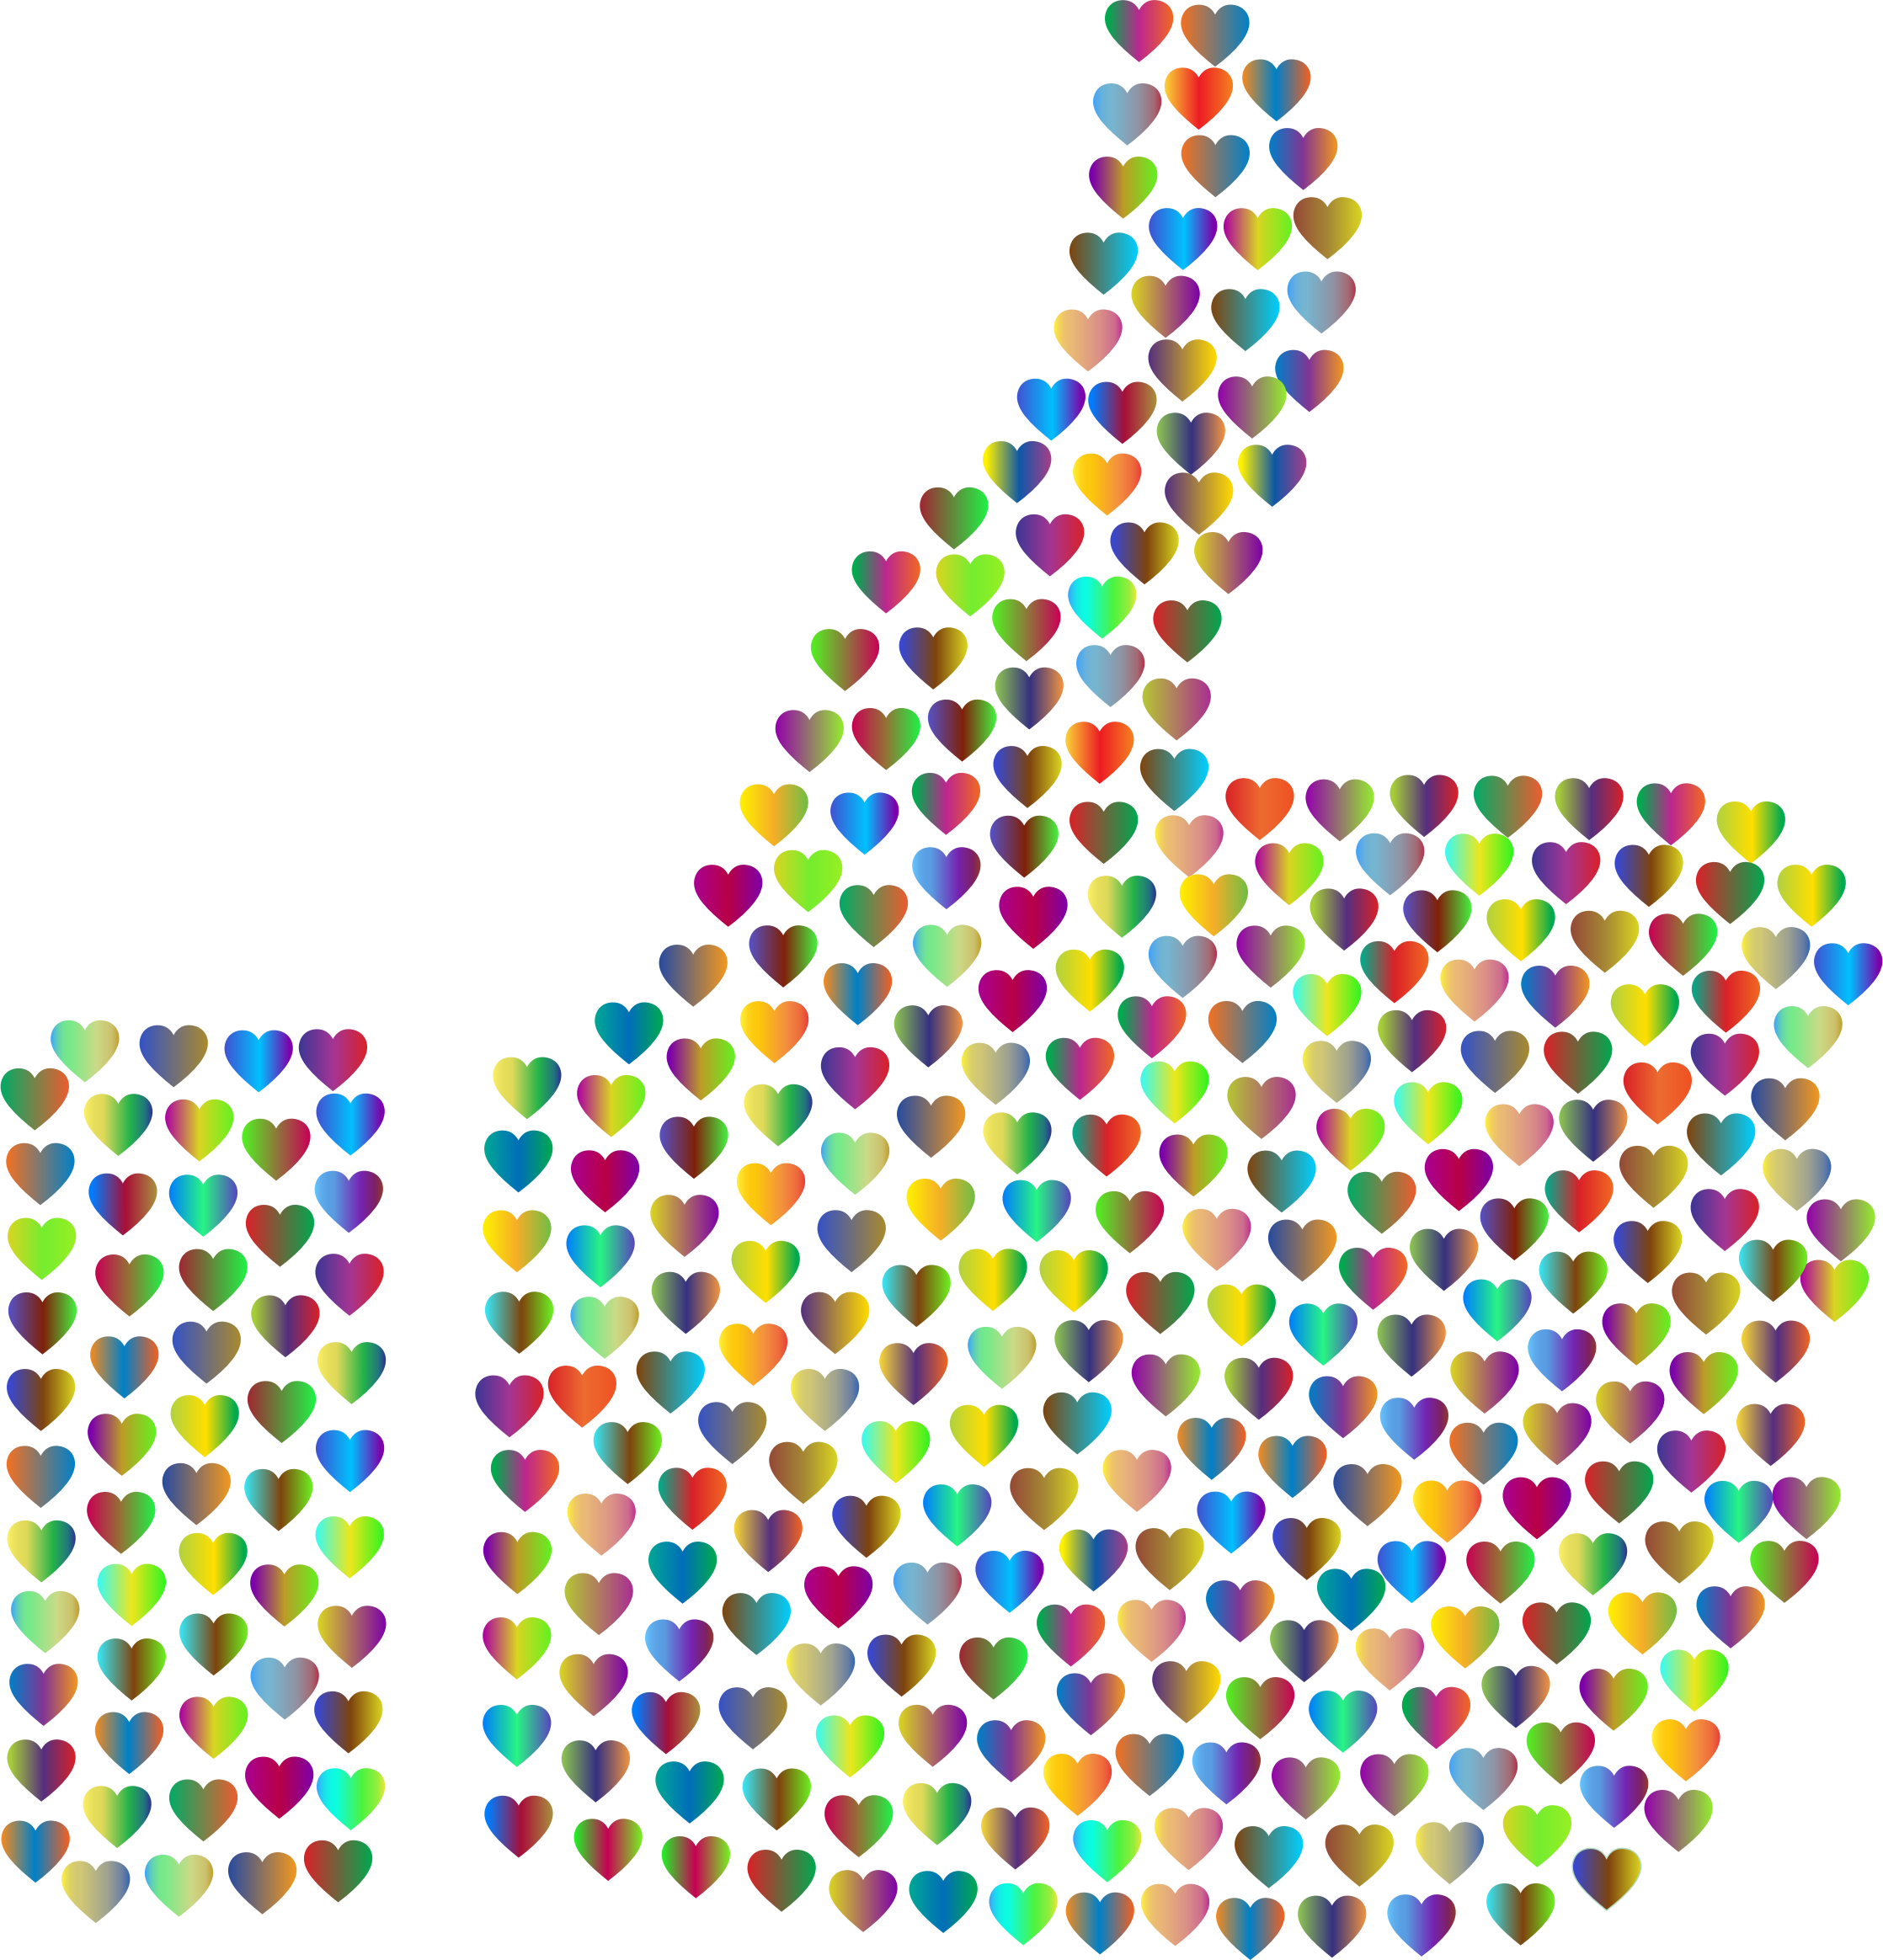 Prismatic Hearts Thumbs Up Silhouette 4 No Background by GDJ